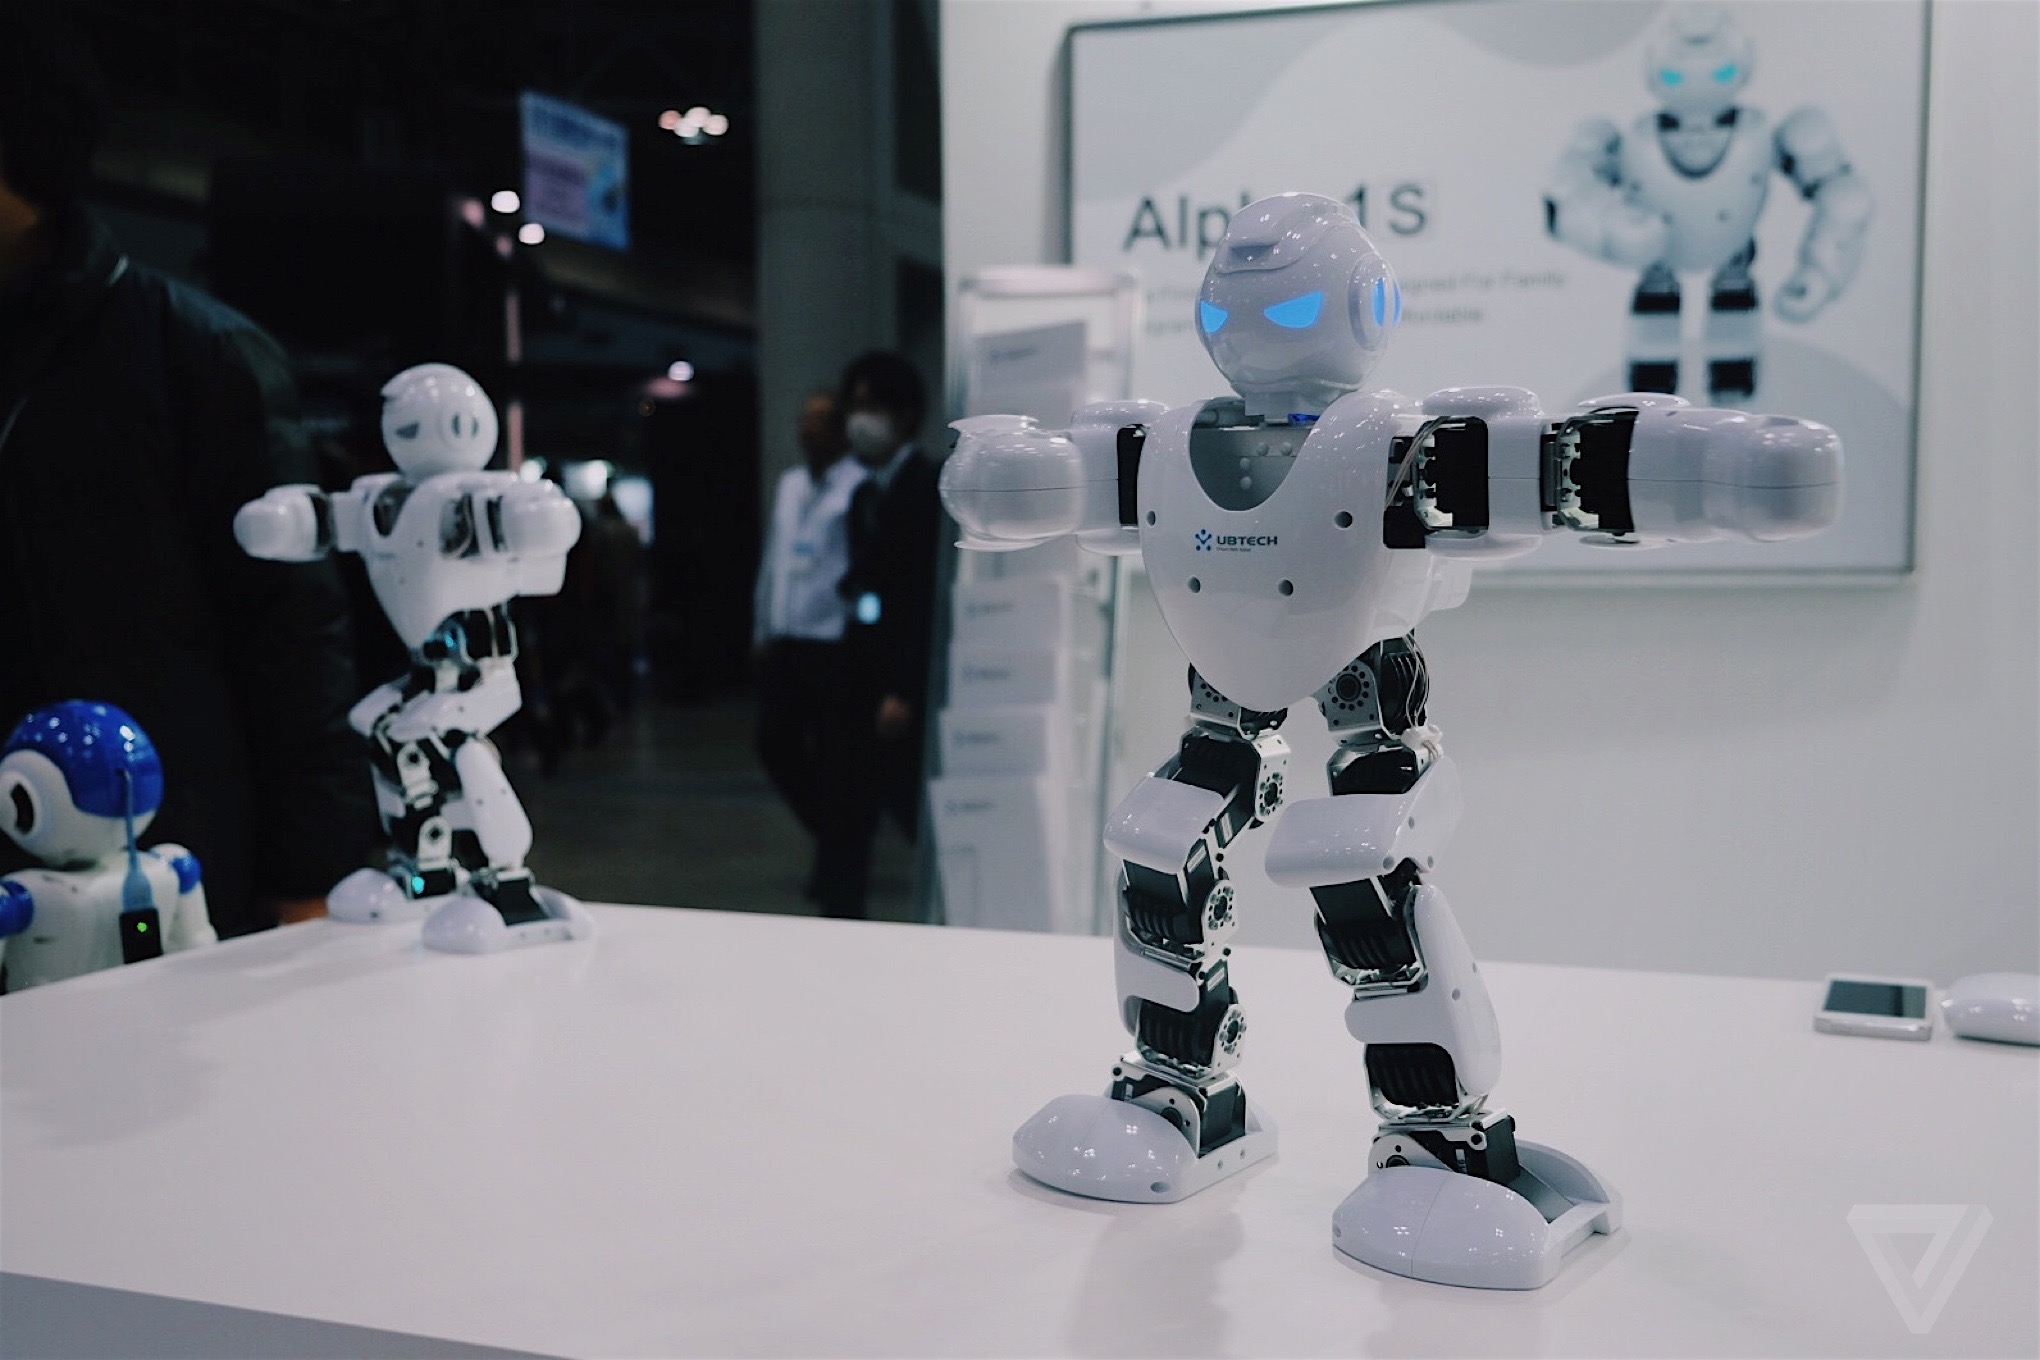 Meet The Japanese Robots That Do What Humans Cant Verge Ubtech Alpha 1s Humanoid Robot Ubtechs Has Some Pretty Slick Dance Moves It Delivers With An Aggressive And Possibly Evil Stare